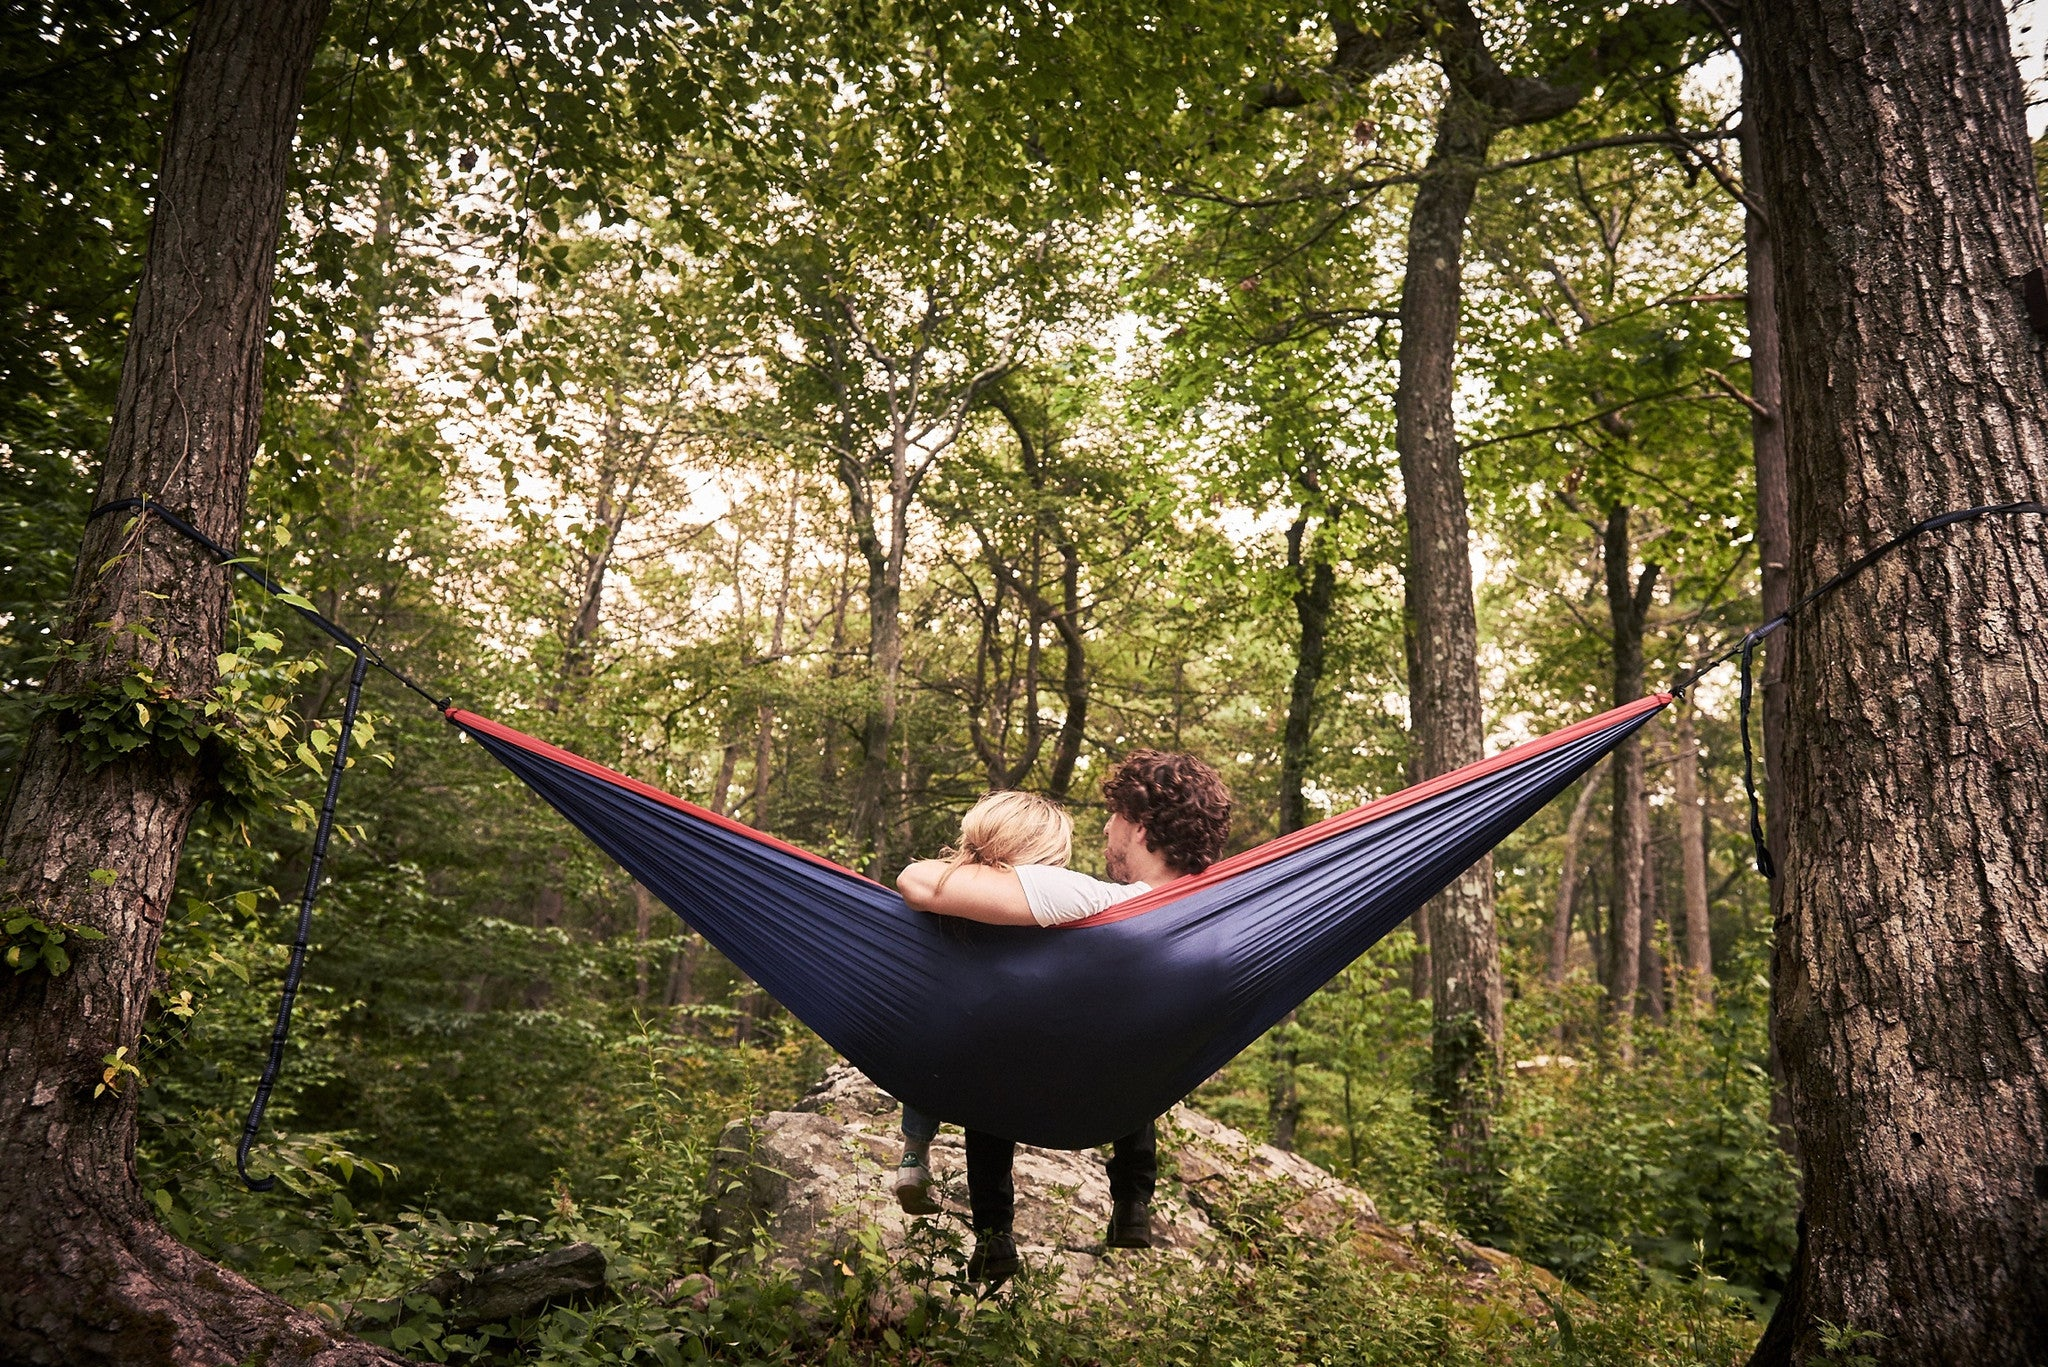 Two Person Hammock Doubles Your Outdoor Enjoyment